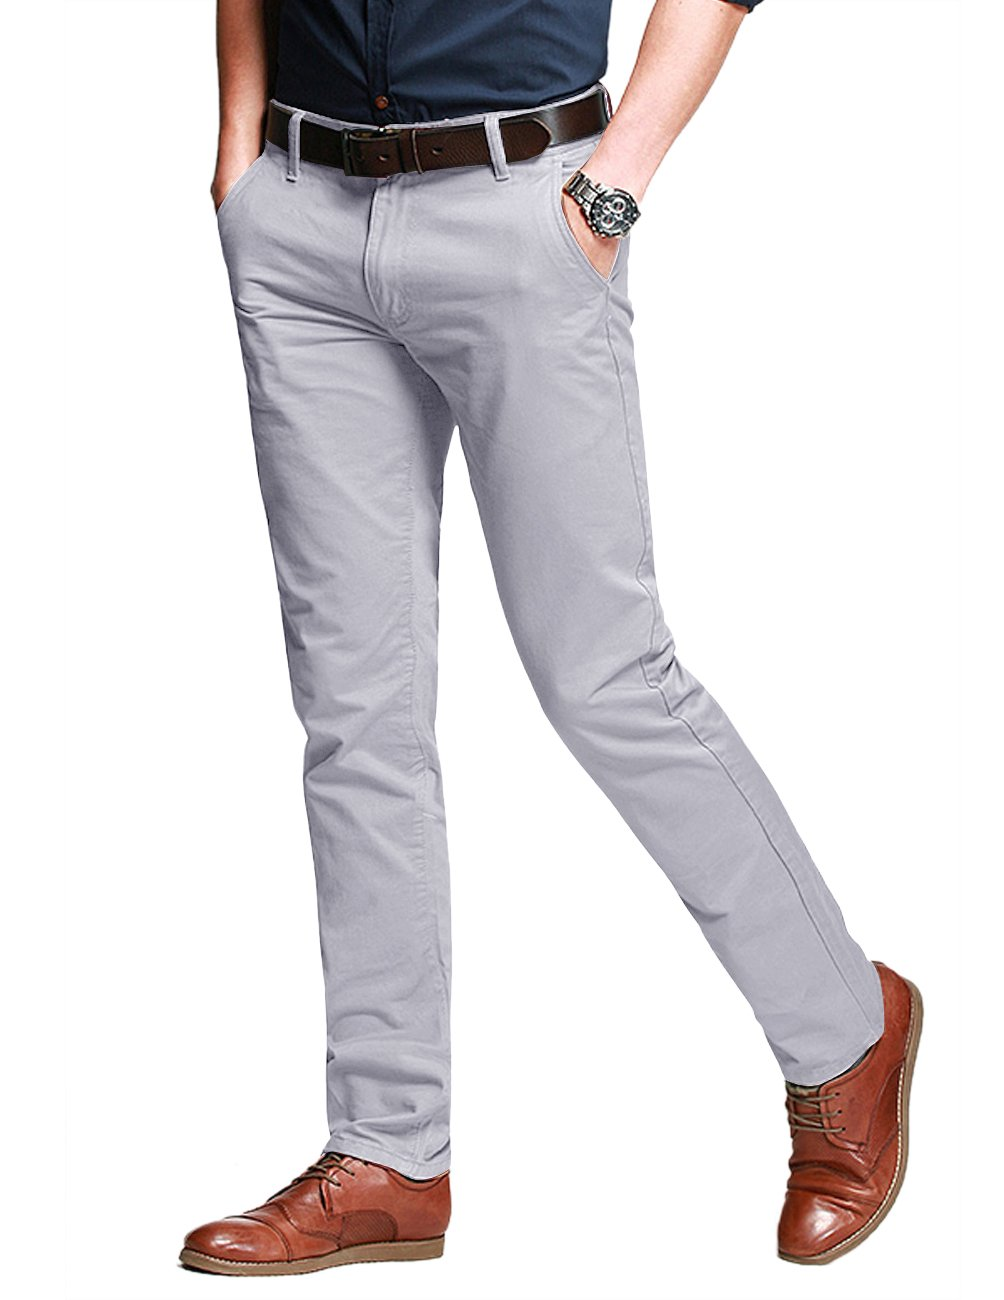 Match Men's Slim Fit Tapered Stretchy Casual Pants (32W x 31L, 8050 Light Gray)